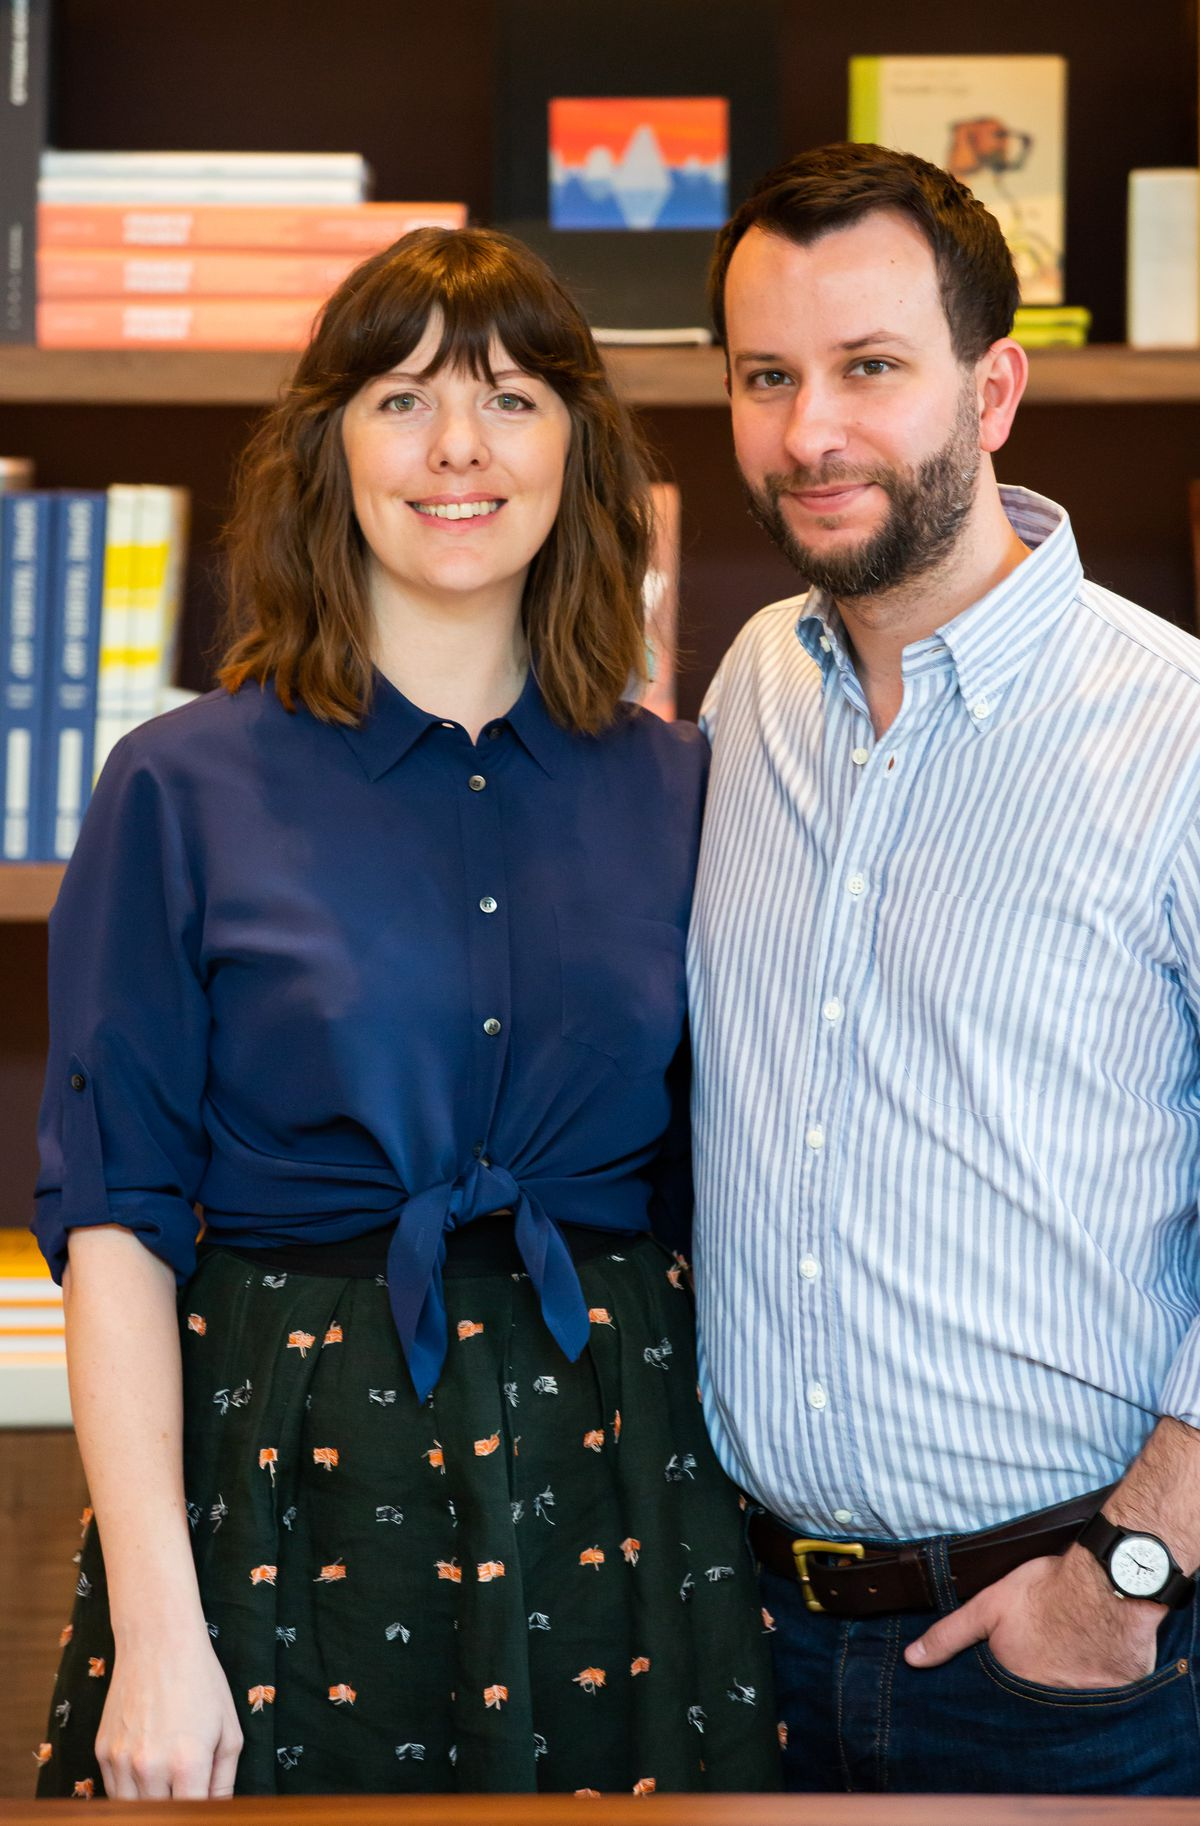 Katie Barringer and Jordan Smelt, owners of Lucian Books and Wine In Atlanta